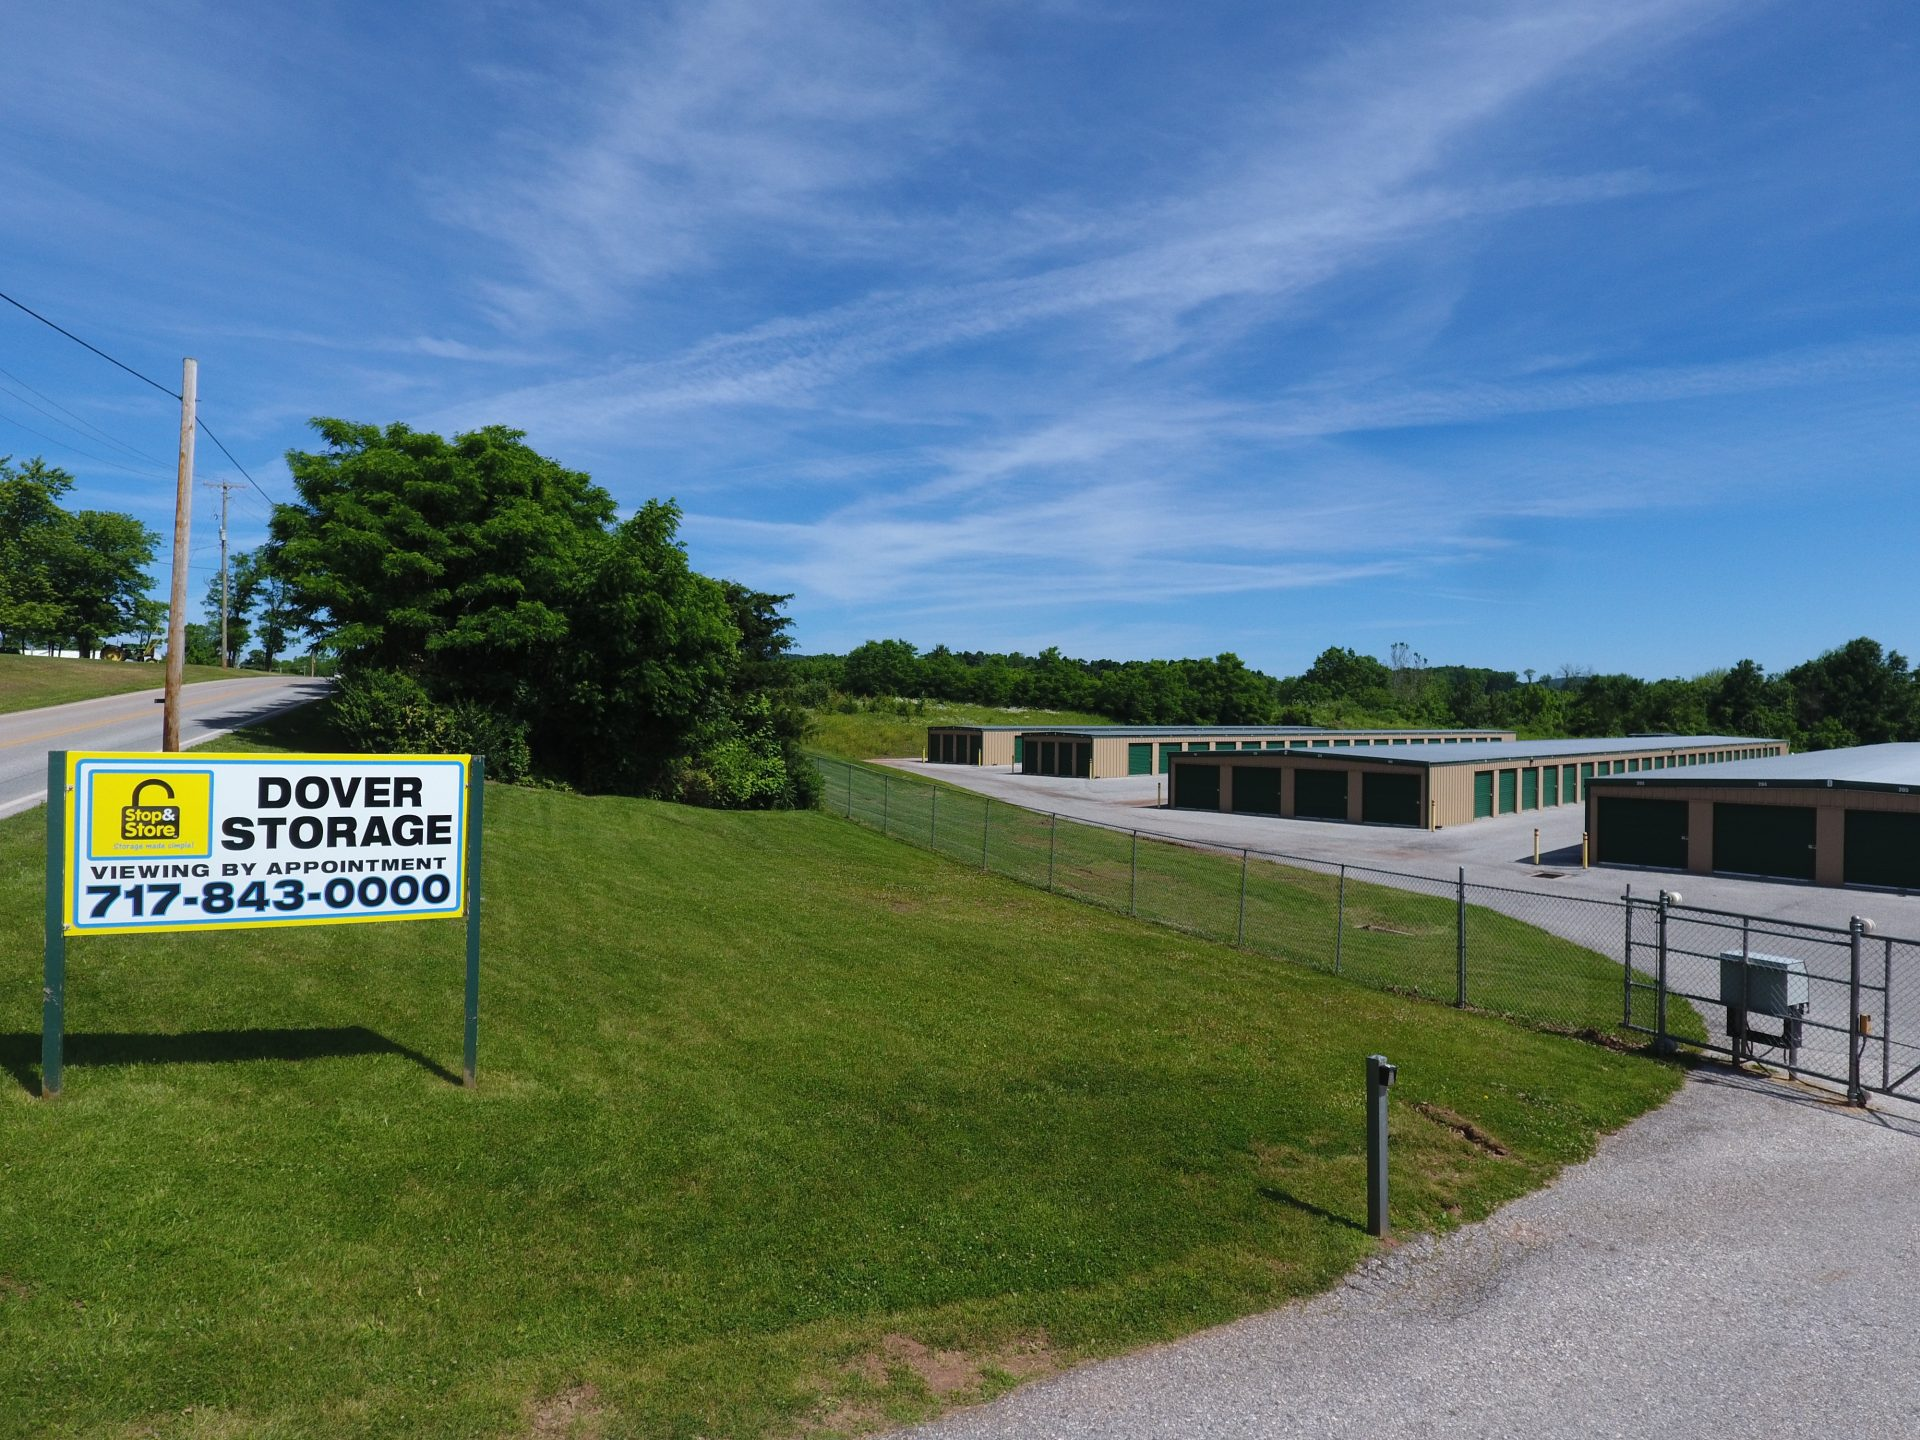 dover storage, front, entrance, hill